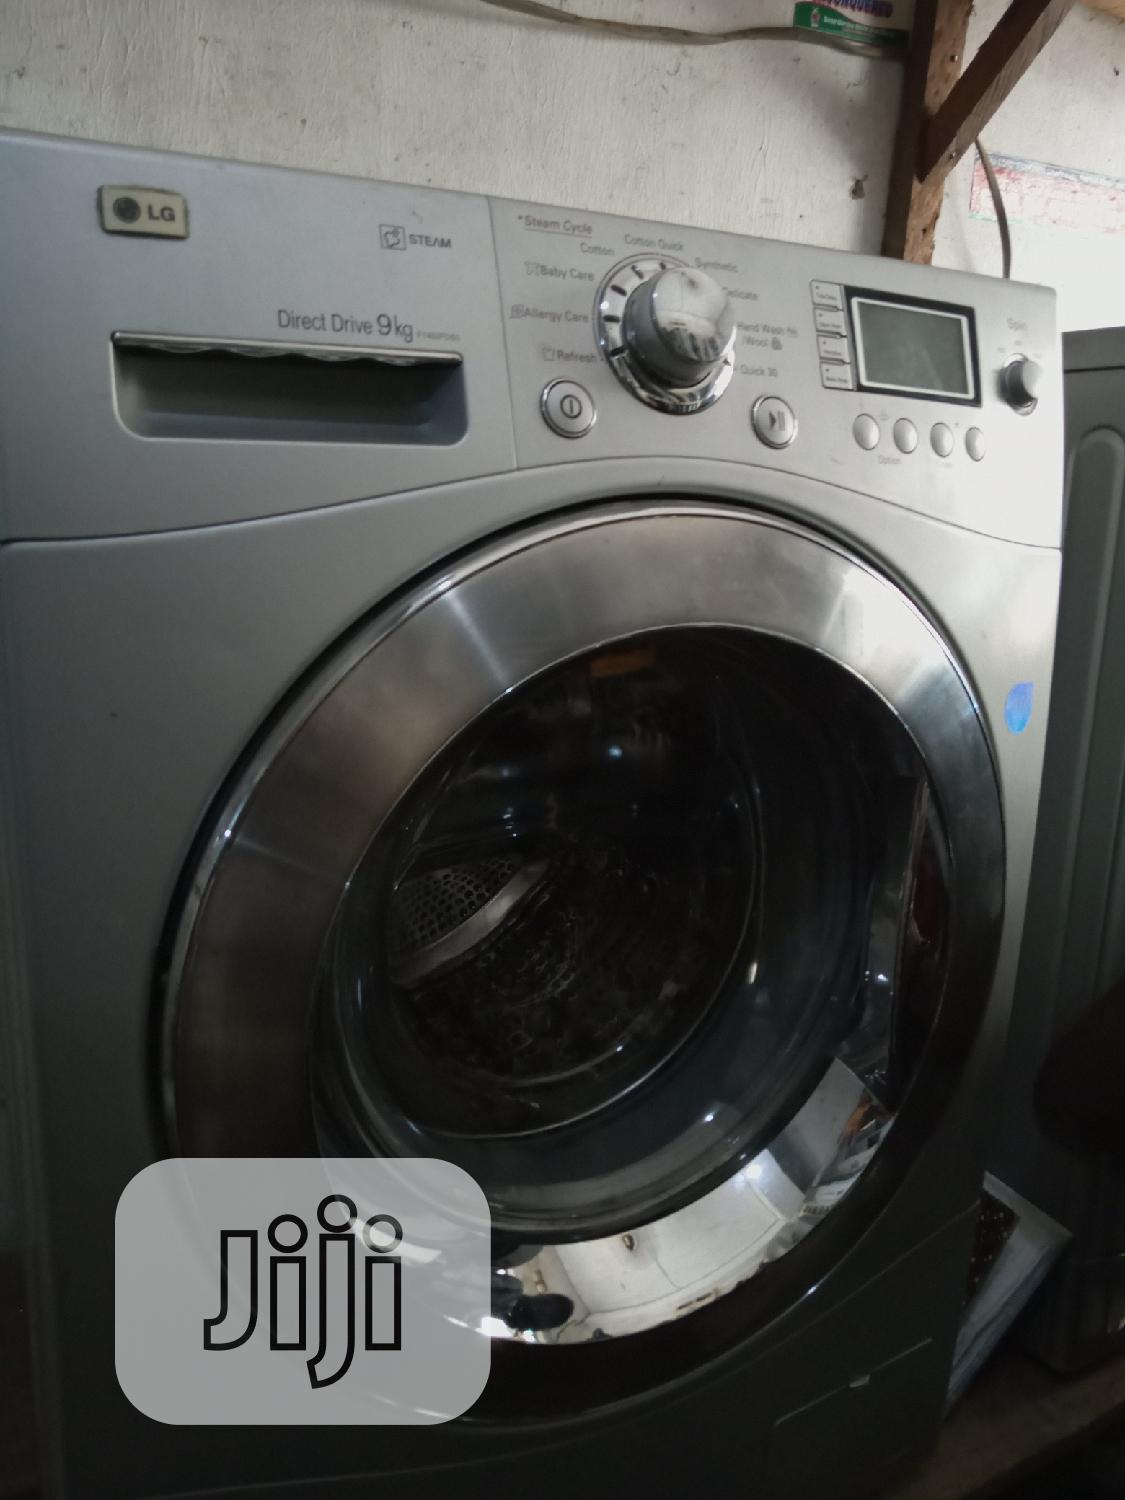 All Kinds Of UK Fairly Used Washing Machine | Home Appliances for sale in Ajah, Lagos State, Nigeria